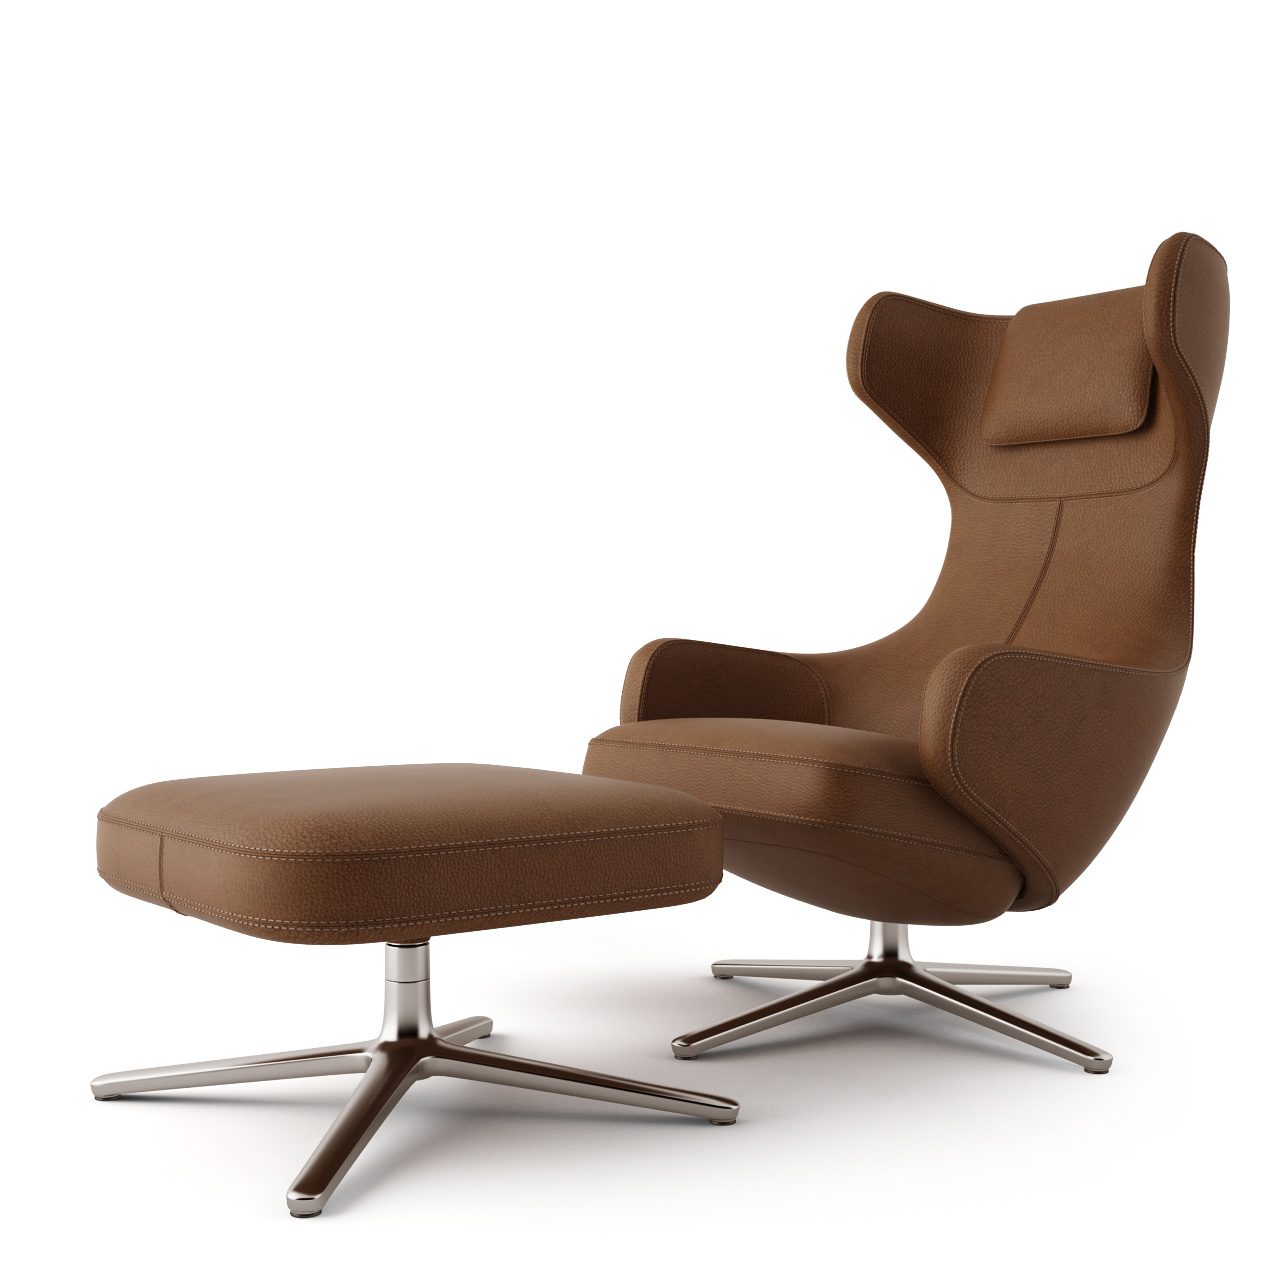 vitra lounge chair diy armchair covers grand repose by dimensiva